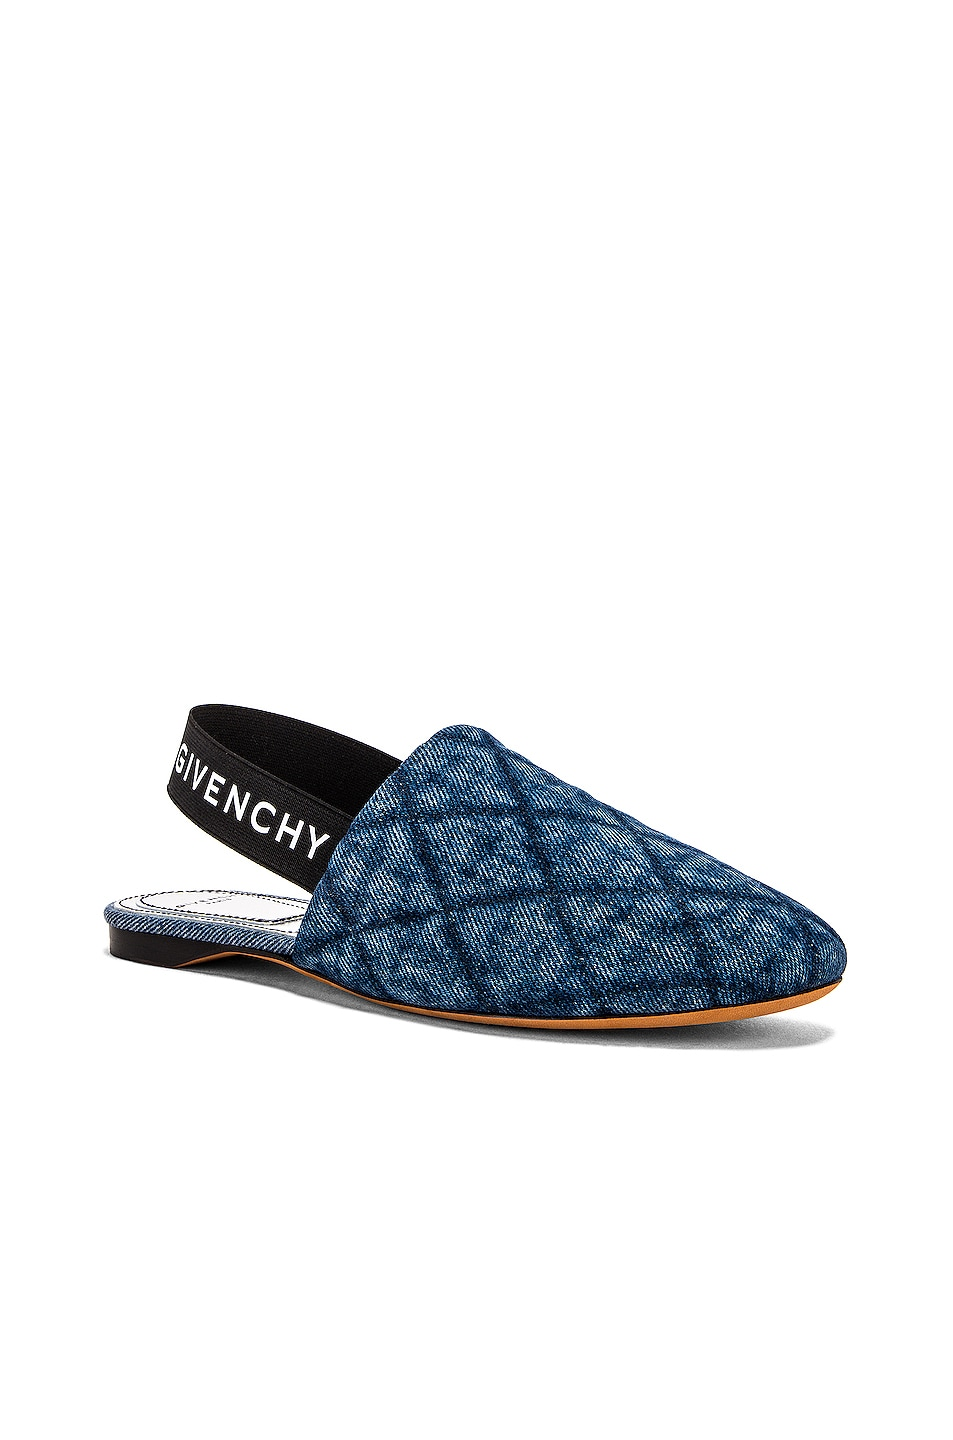 Image 2 of Givenchy Rivington Sling Back Flat in Blue Denim